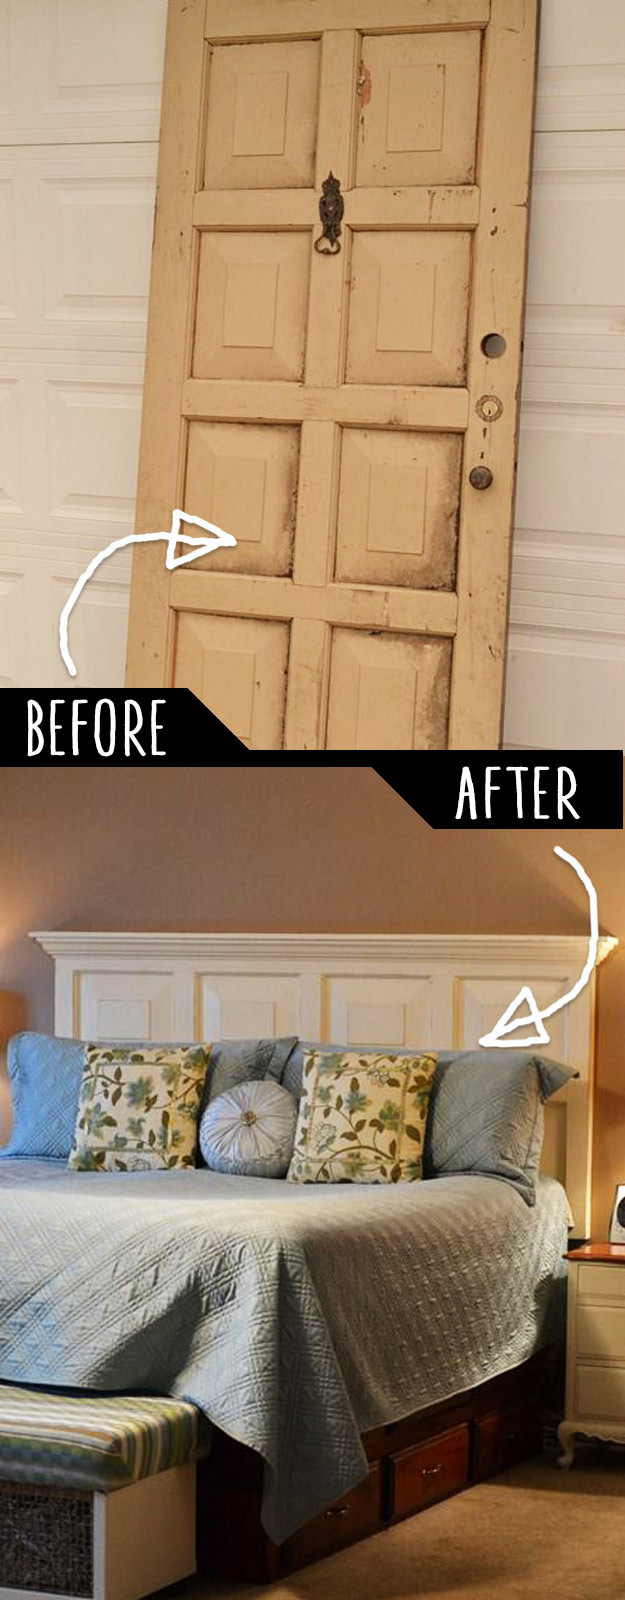 DIY Furniture Hacks | Door Headboard | Cool Ideas For Creative Do It  Yourself Furniture Made